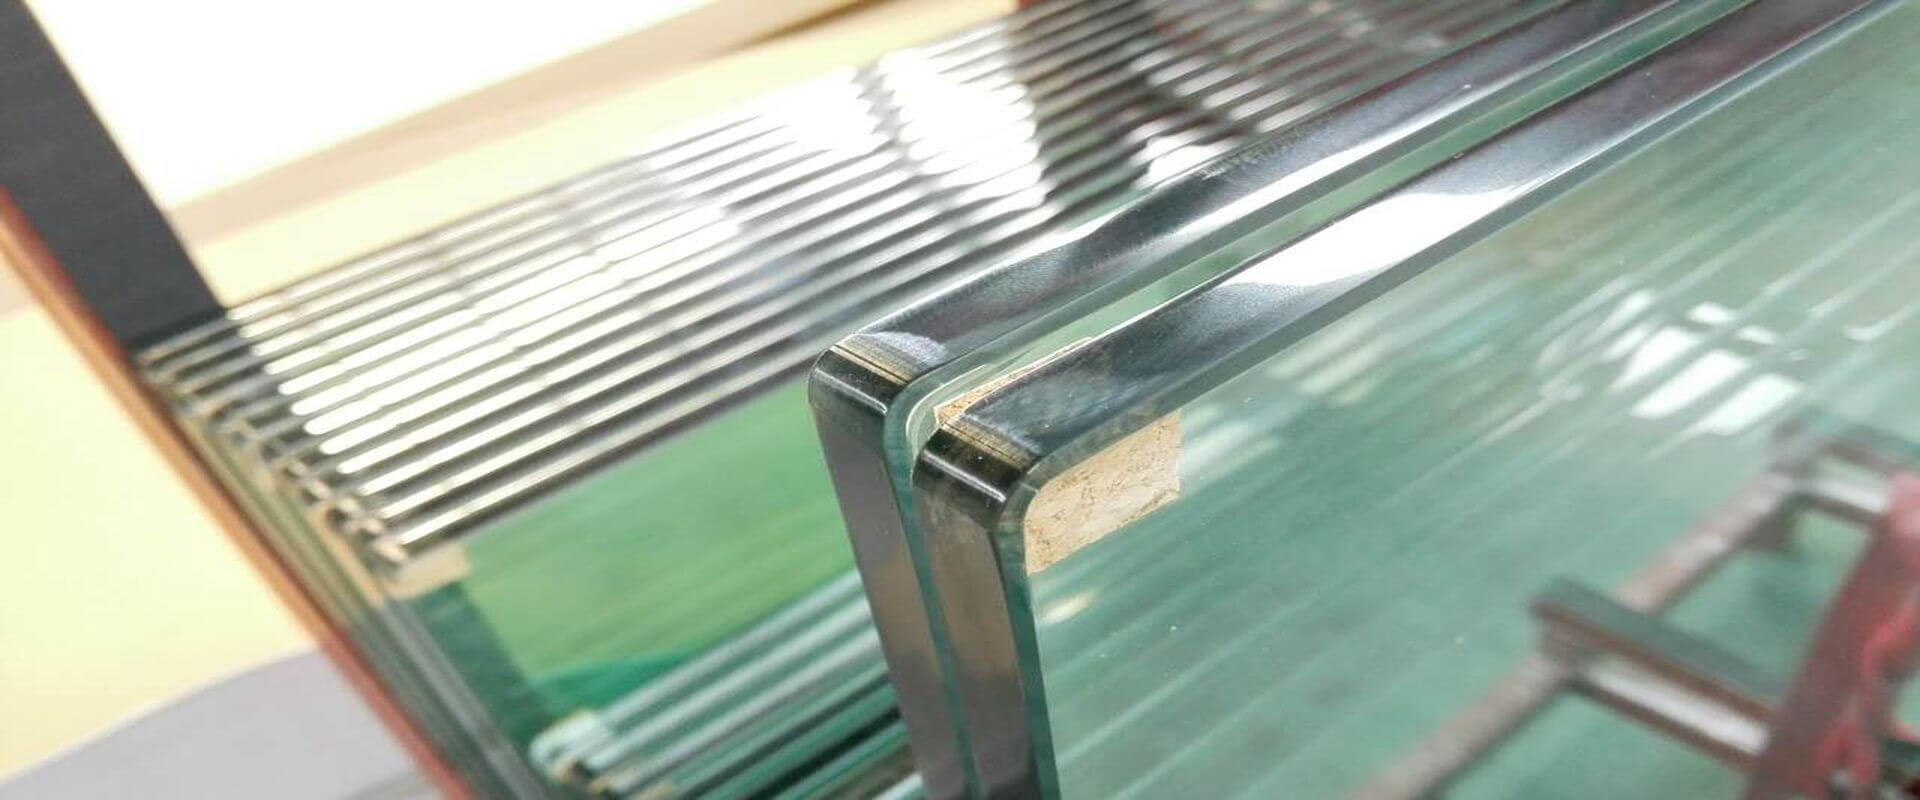 Tempered Glass,Shower Glass,Balustrade Glass, Balcony Glass,Pool Glass, Fence Glass,Furniture Glass, Safety Glass, Garden Fencing Glass, Tempered Sliding Door Glass, Partition Glass, Tempered Wardrobe Glass, Tempered Table Glass, Tempered Cabinet Glass, Tempered Furniture Glass,Balustrade Tempered Glass,Tempered Balcony Glass, Tempered Swimming Pool Fencing Glass, Tempered Pool Fencing Glass, Toughened Glass Door Panel, Tempered Storefront Glass, Tempered Shopfront Glass, Tempered Wardrobe Glass, Tempered Sliding Door Glass, Tempered Glass with Holes and Cutouts, Balustrade Tempered Glass, Tempered Balcony Glass, Tempered Swimming Pool Fencing Glass, Tempered Pool Fencing Glass, Toughened Glass Door Panel, Tempered Storefront Glass, Tempered Shop front Glass, Tempered storefront Glass, Tempered Wardrobe Glass, Tempered Sliding Door Glass, Tempered Silkscreen Print Partition Glass, Tempered Shower Door Glass, Tempered Shower Enclosure Glass, Tempered Shower Fixation Glass, Tempered Spandrel Glass, Tempered Heat Soaked Glass, Tempered Heat Treated Glass, Tempered Furniture Glass, Tempered Window Glass Panel, Tempered Glass House Screen, Tempered Skylight Glass, Tempered Table Glass, Tempered Furniture Glass, Tempered Shower Soap Dish Glass Shelf, Tempered Window Glass Louvre, Tempered Door Glass Louvre, Tempered Screen Glass, Tempered Stair Railing Glass, Tempered Laminated Glass, Tempered Ceramic Frit Laminated Glass, Tempered Silkscreen Print Laminated Glass Wall, Tempered Silkscreen Print Glass Door, Tempered Ceramic Frit Glass Panel, Printing Tempered Glass, Laminated Tempered Glass Roof, Laminated Tempered Glass Overhead, Heat Strengthened Laminated Glass Overhead, Heat strengthened Laminated Glass Roof, Heat Strengthened Laminated Glass Skylight, Semi-Tempered Laminated Glass, Semi-Toughened Laminated Glass, China Tempered Glass Manufacturer, China Tempered Glass Factory,Shower Cubicles Glass